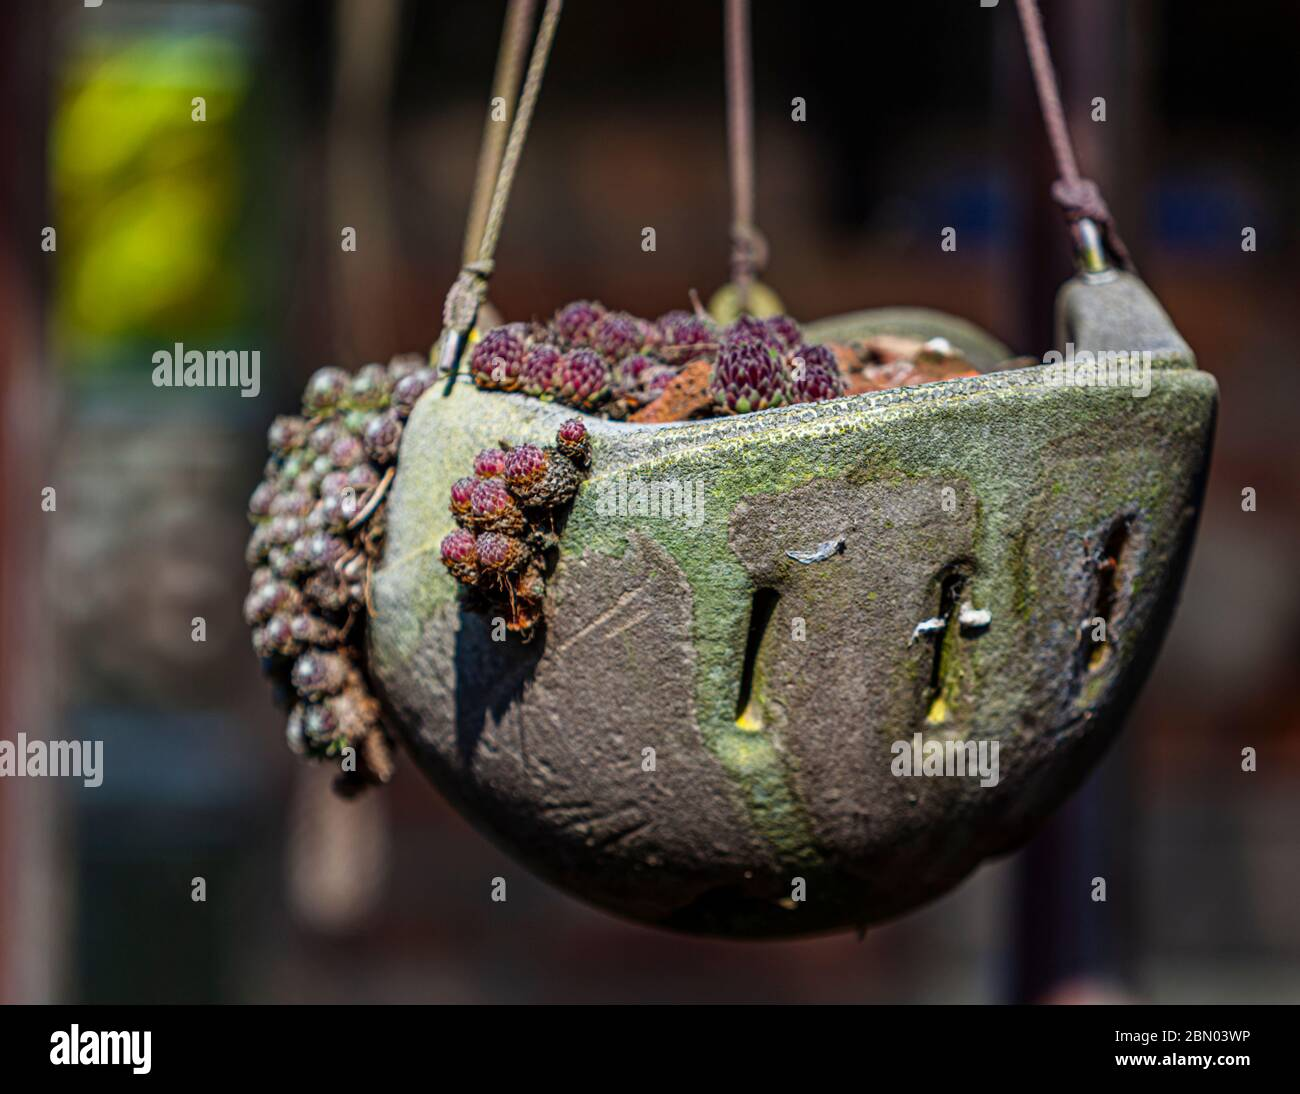 Hanging flower pot made of a protection helmet in Jüchen, Germany Stock Photo